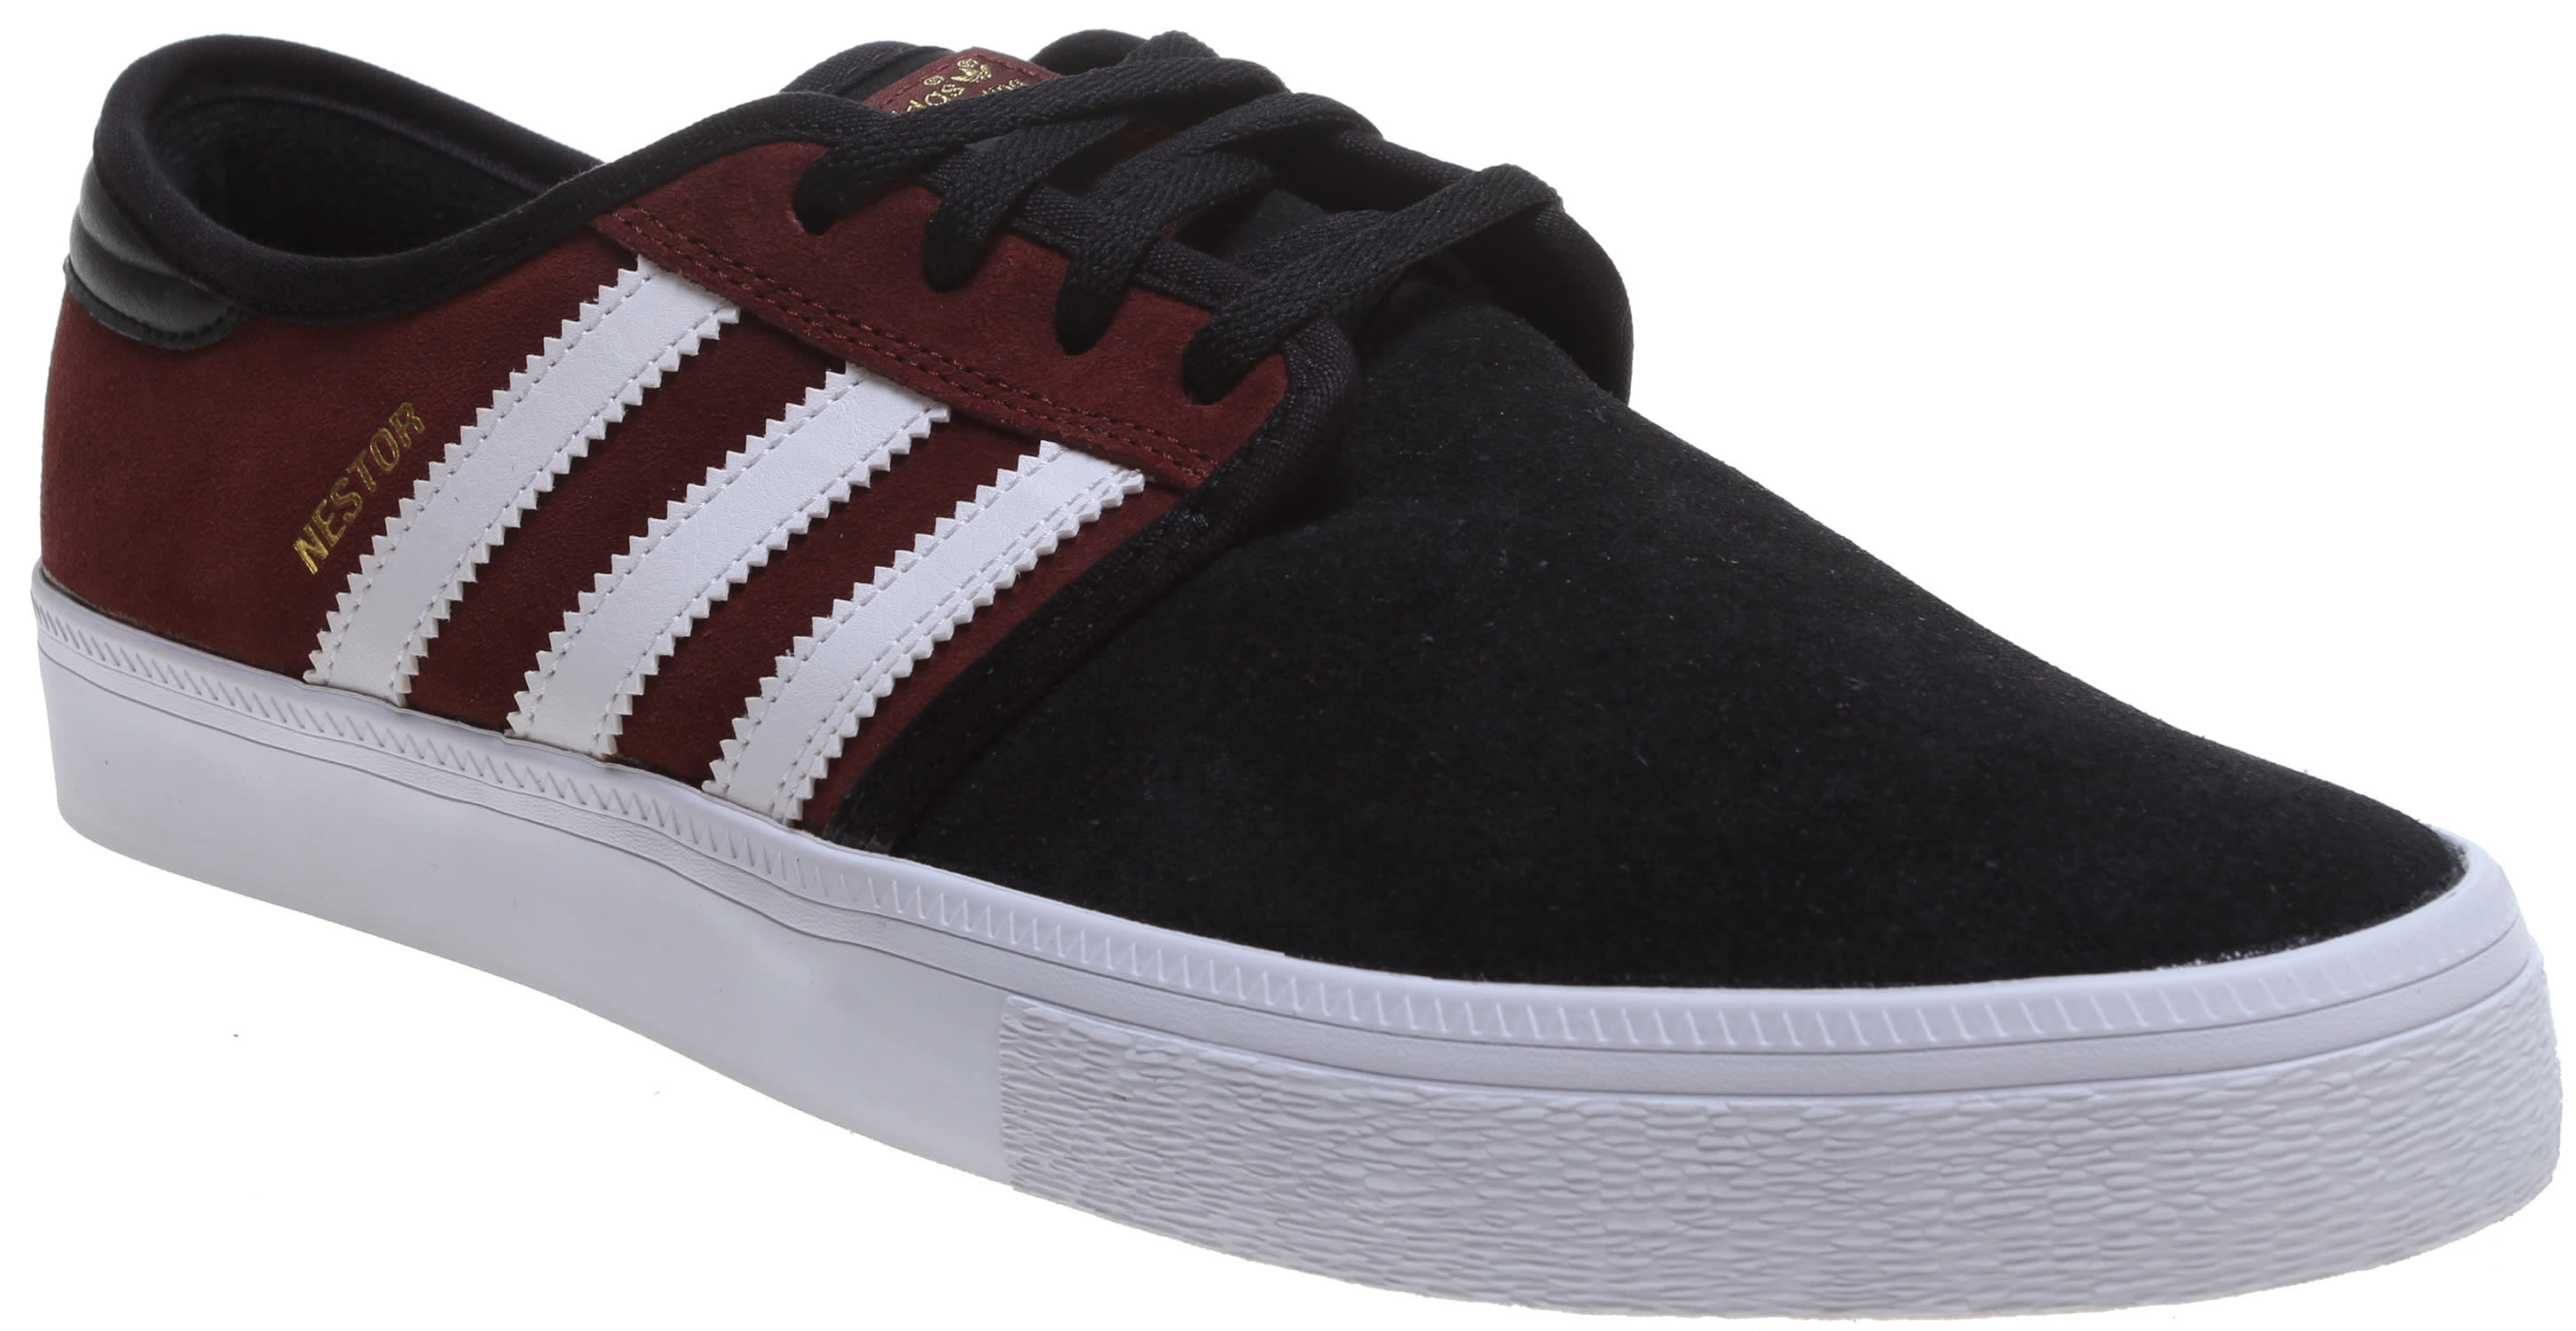 New Arrival Adidas Seeley ADV Skate Shoes